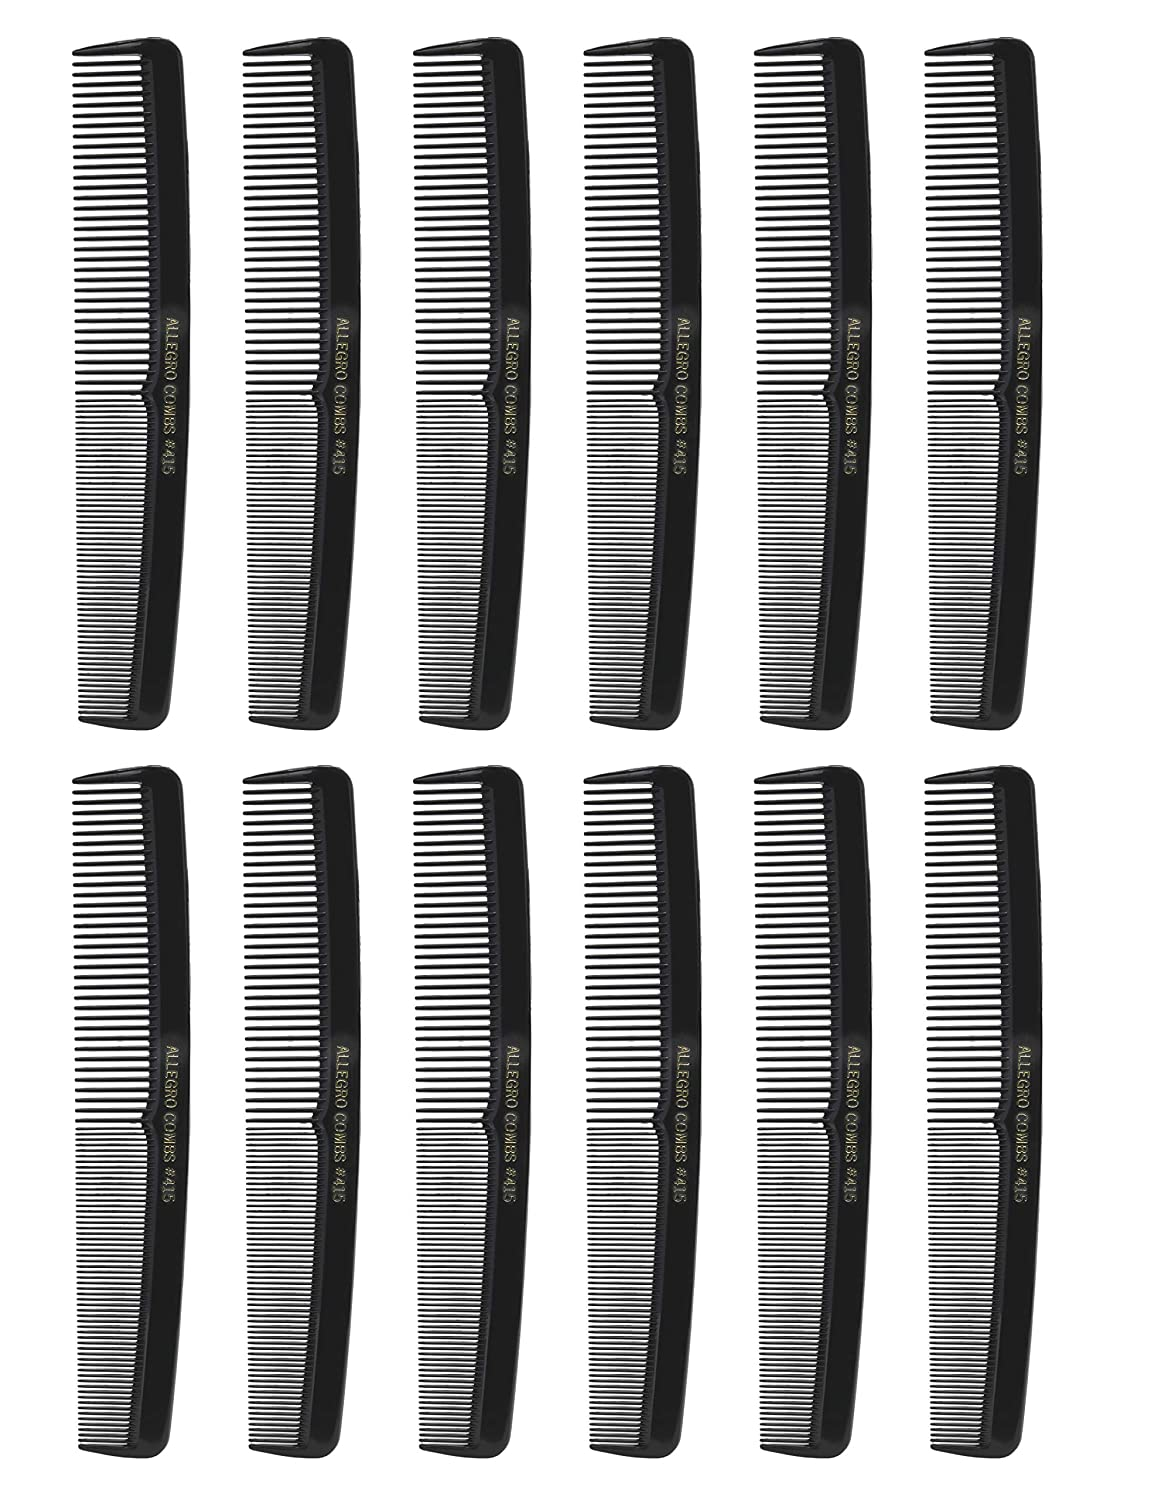 Allegro Combs Super sale period limited 415 All Purpose Max 60% OFF combs Styling Blac Hair